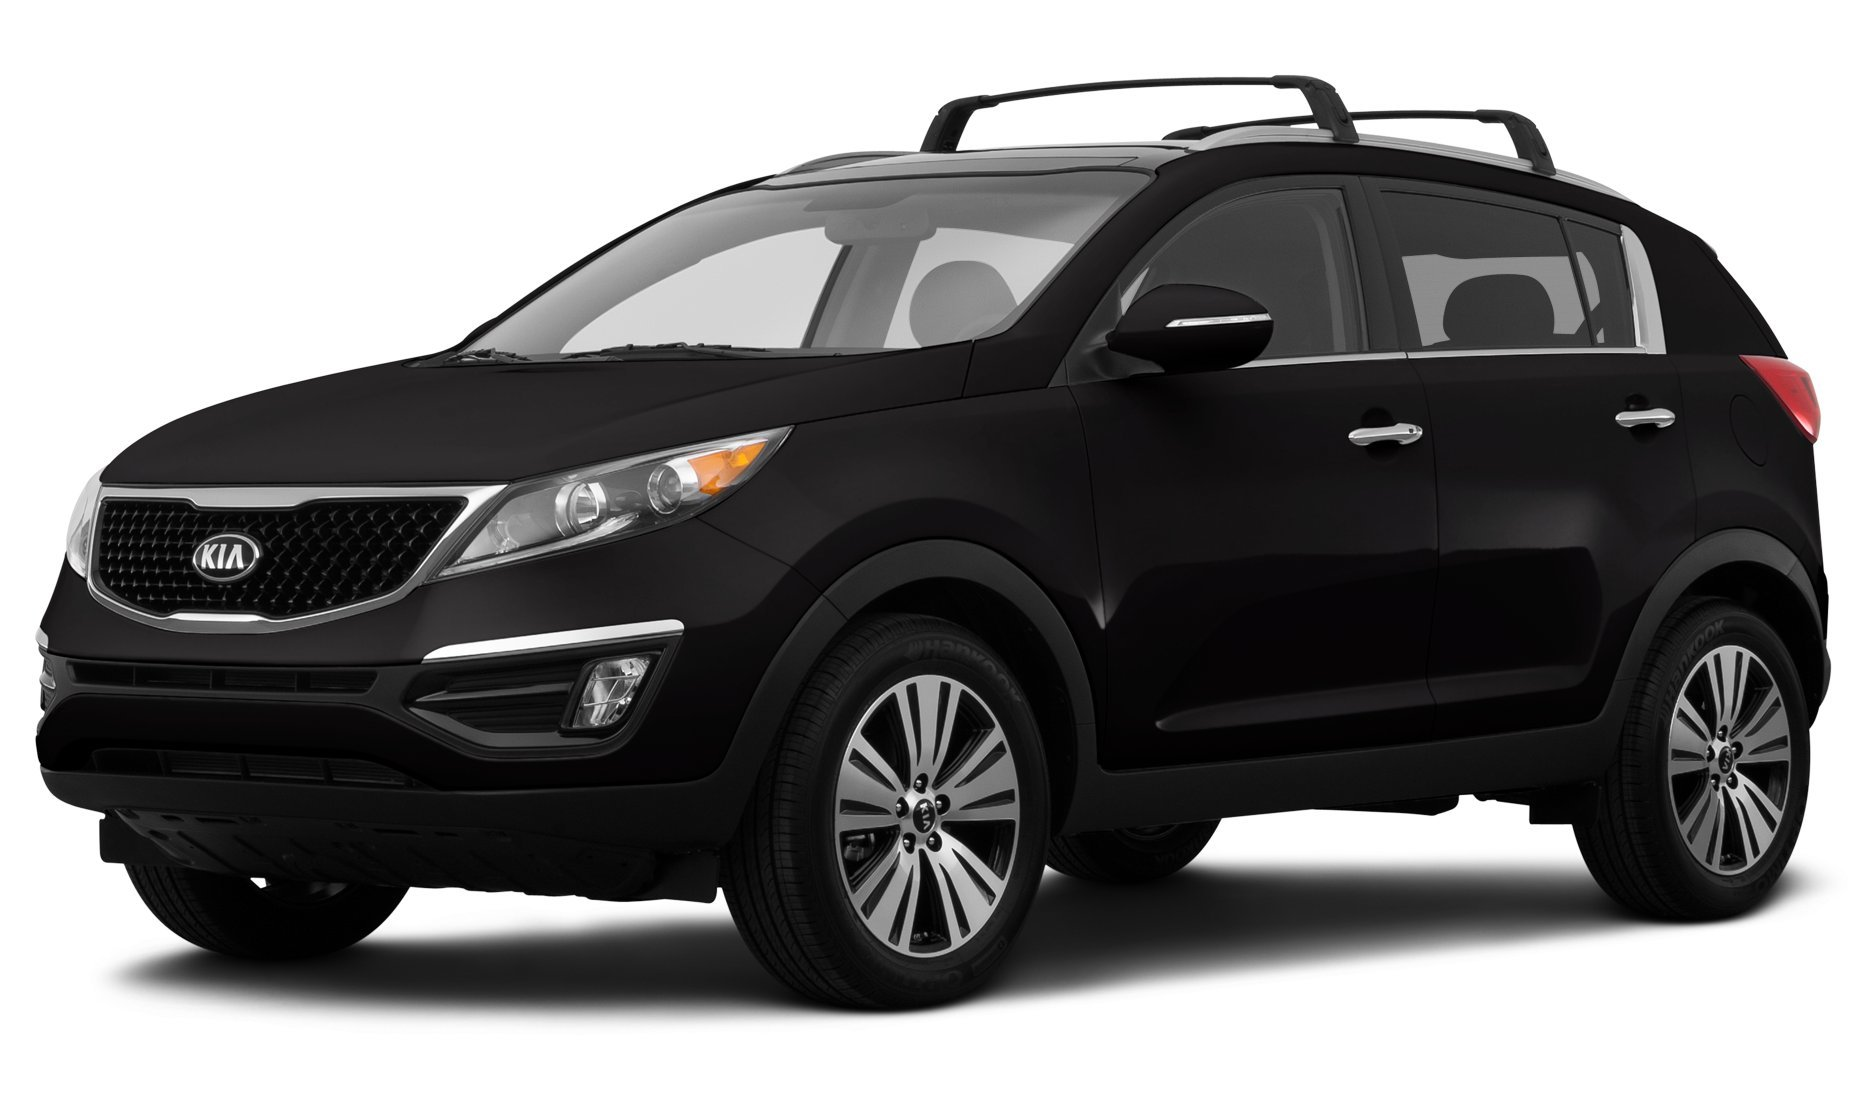 2014 kia sportage reviews images and specs vehicles. Black Bedroom Furniture Sets. Home Design Ideas